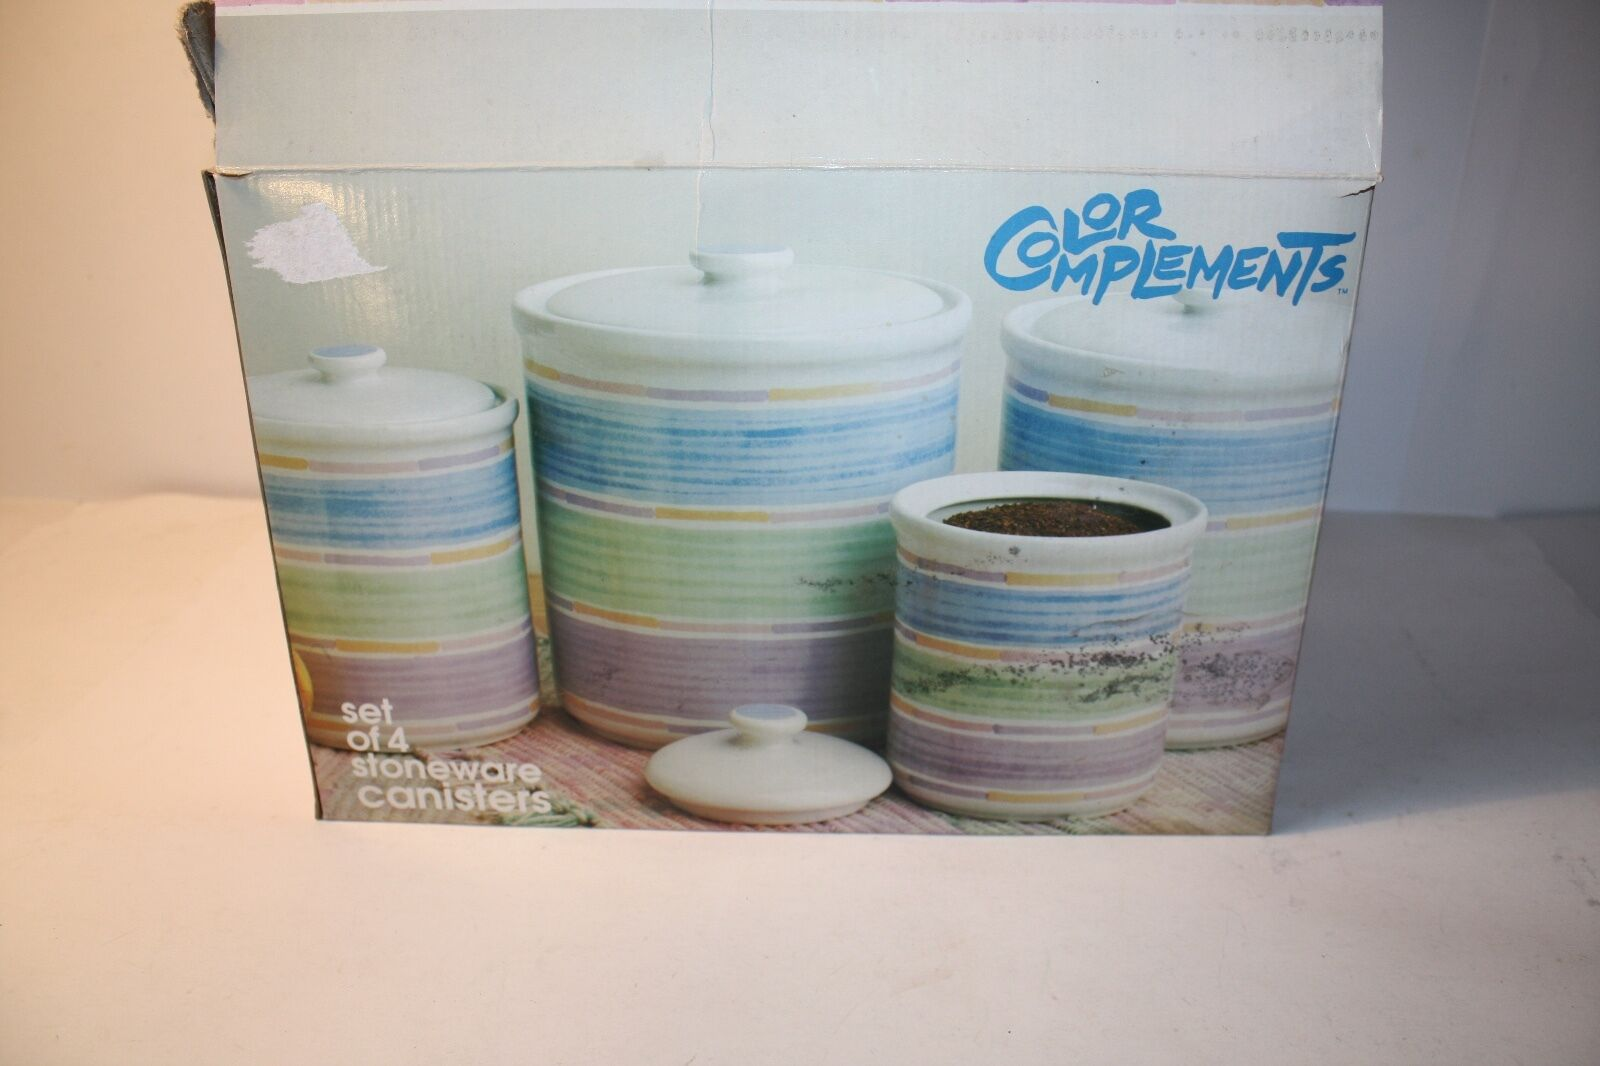 Paul Marshall 4-Piece Stoneware Canister Set color Complements w  lids EUC